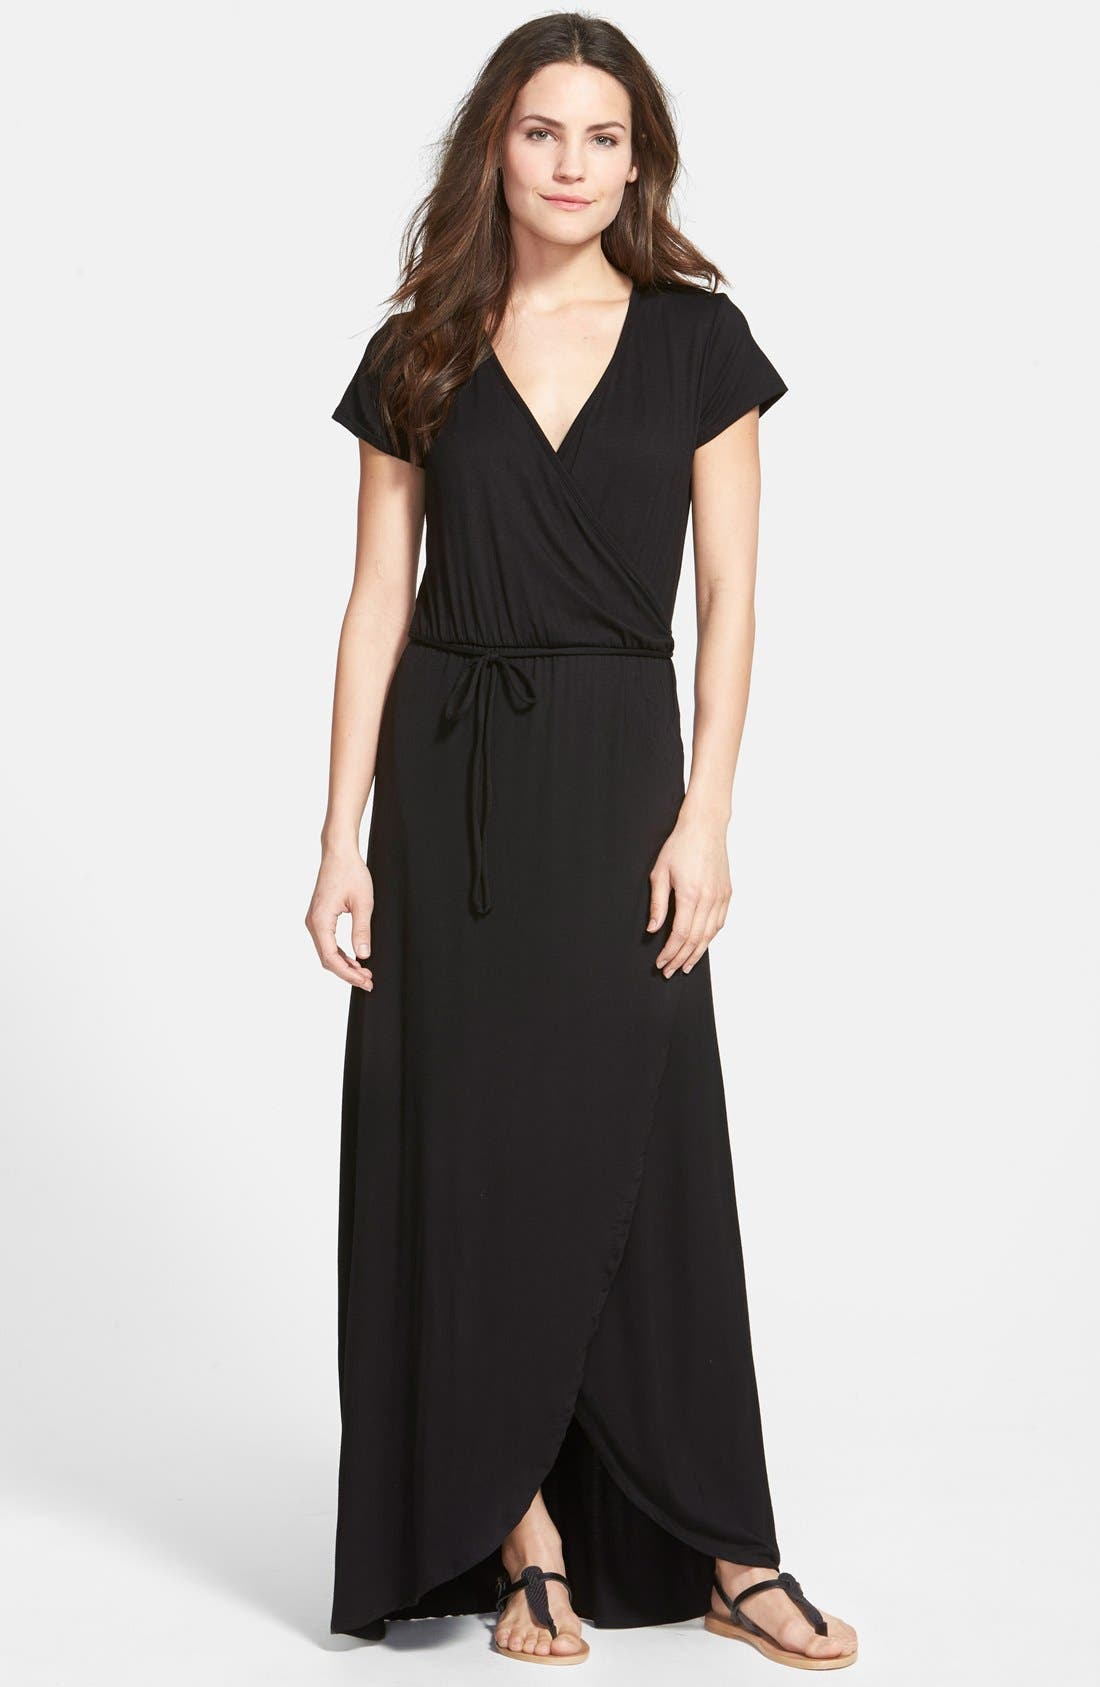 Alternate Image 1 Selected - Loveappella Cap Sleeve Faux Wrap Jersey Maxi Dress (Regular & Petite)